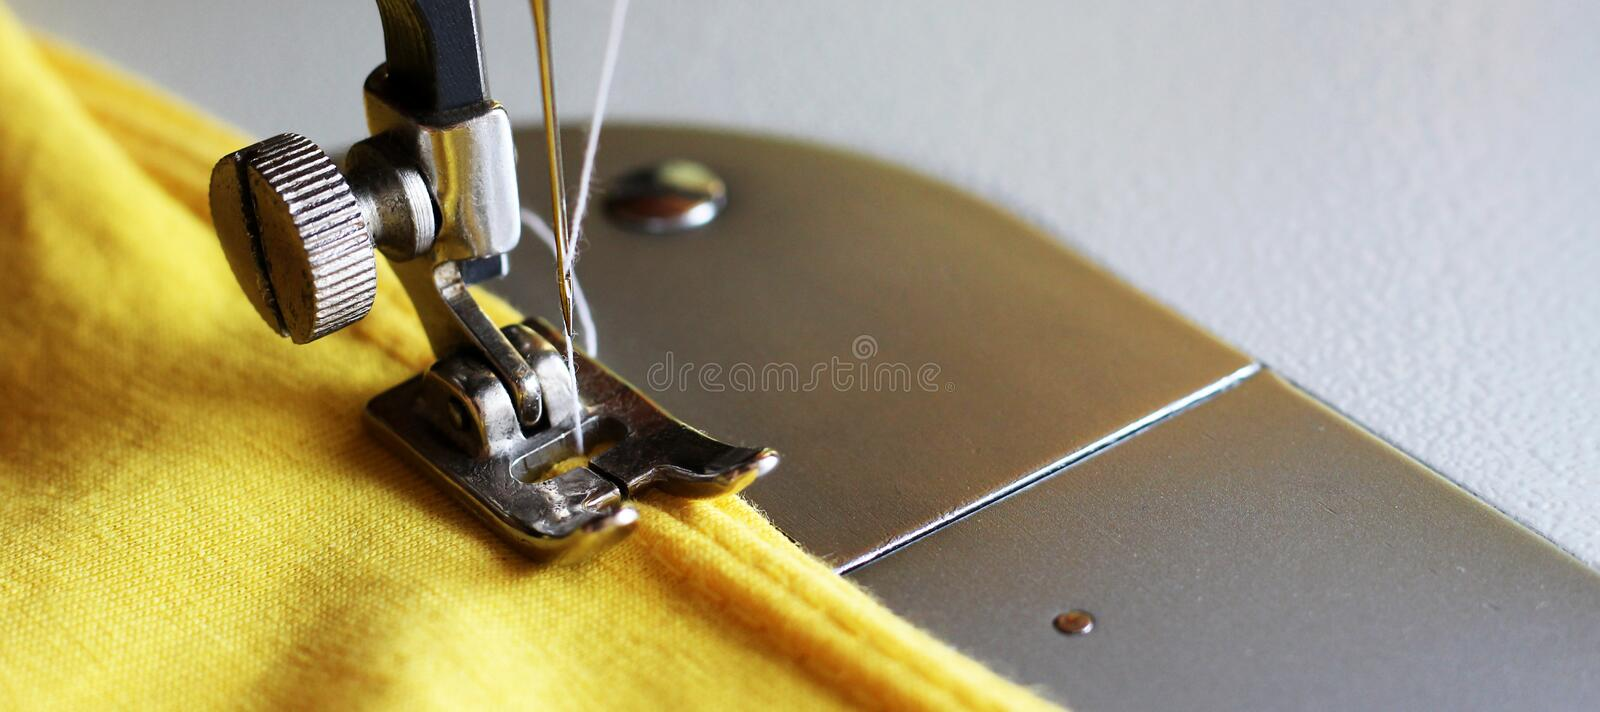 Close-up detail of the sewing machine royalty free stock images